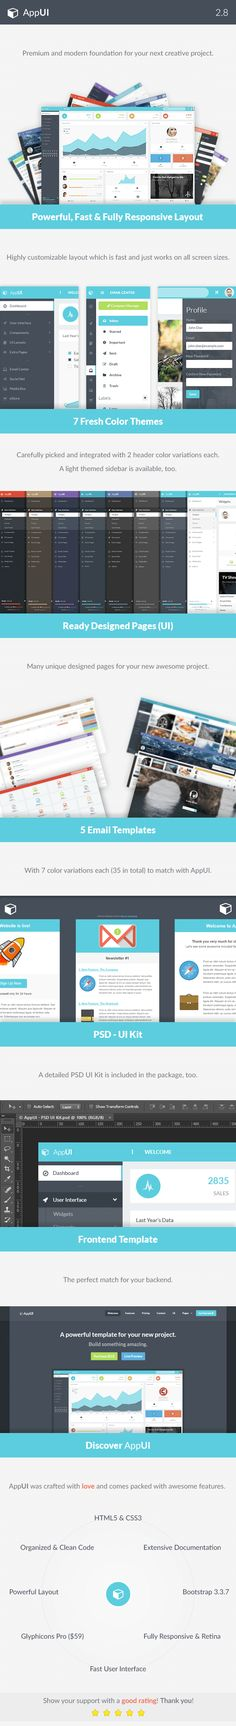 Conquer - Responsive Admin Dashboard Template | Dashboard template ...